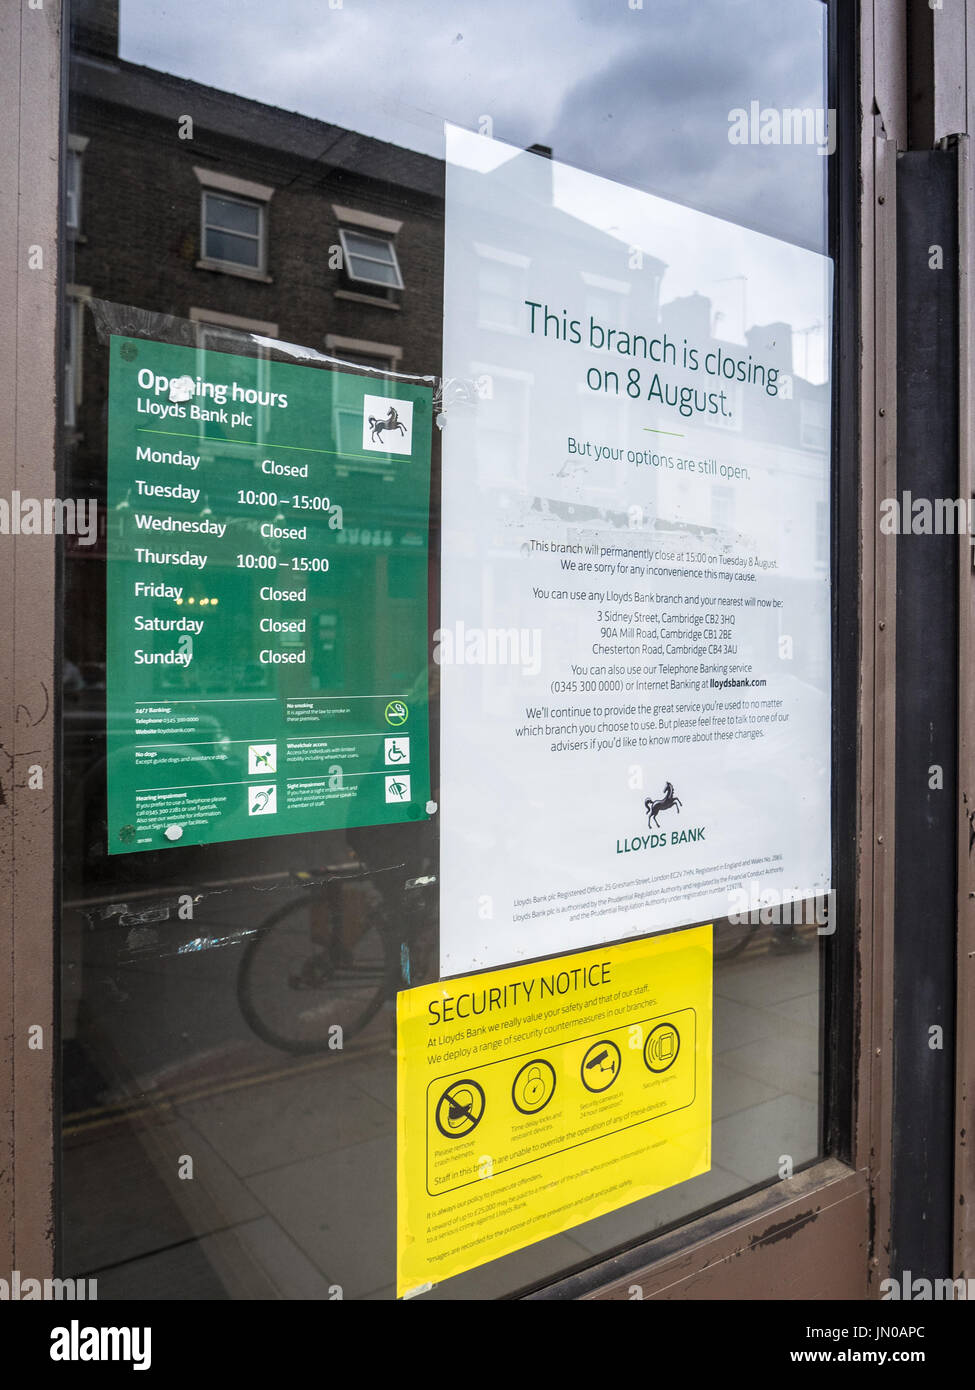 Lloyds Bank Branch Closure notice on the door of the branch - Stock Image